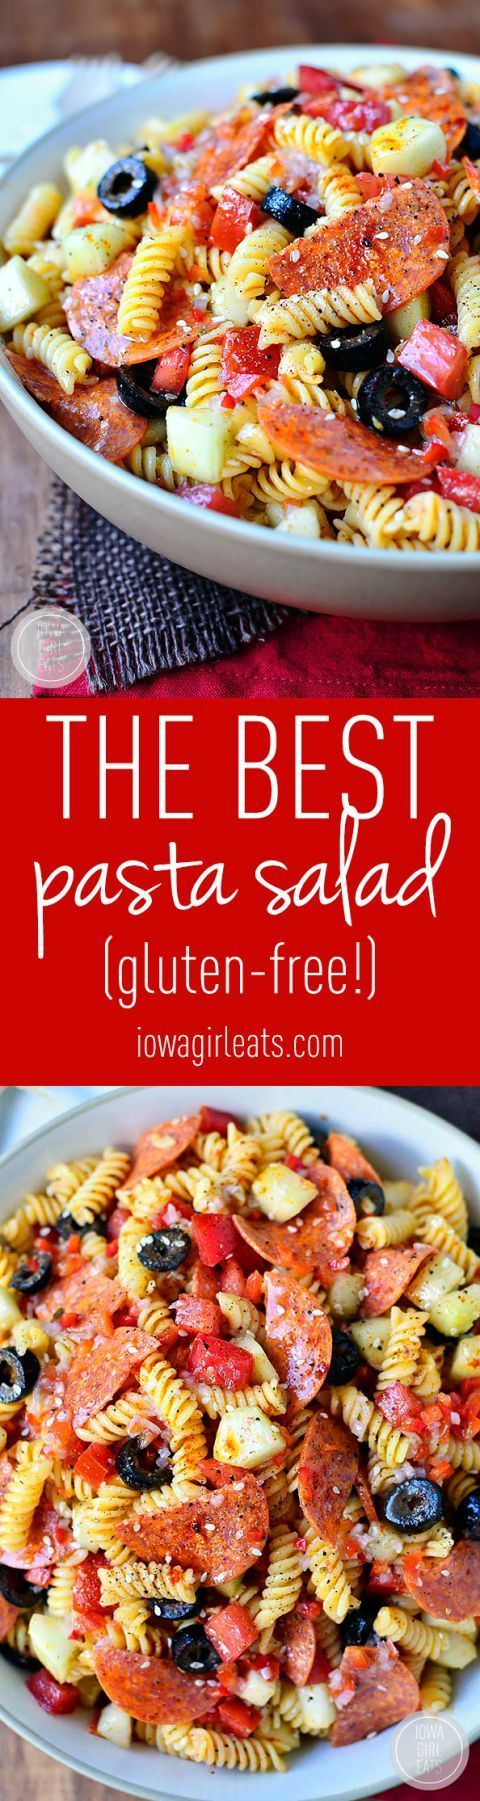 The BEST Pasta Salad The BEST Pasta Salad is an old family recipe. Simple and simply the best (easily made gluten-free, too!) #glutenfree | iowagirleats.com https://www.pinterest.com/pin/231020655869799688/